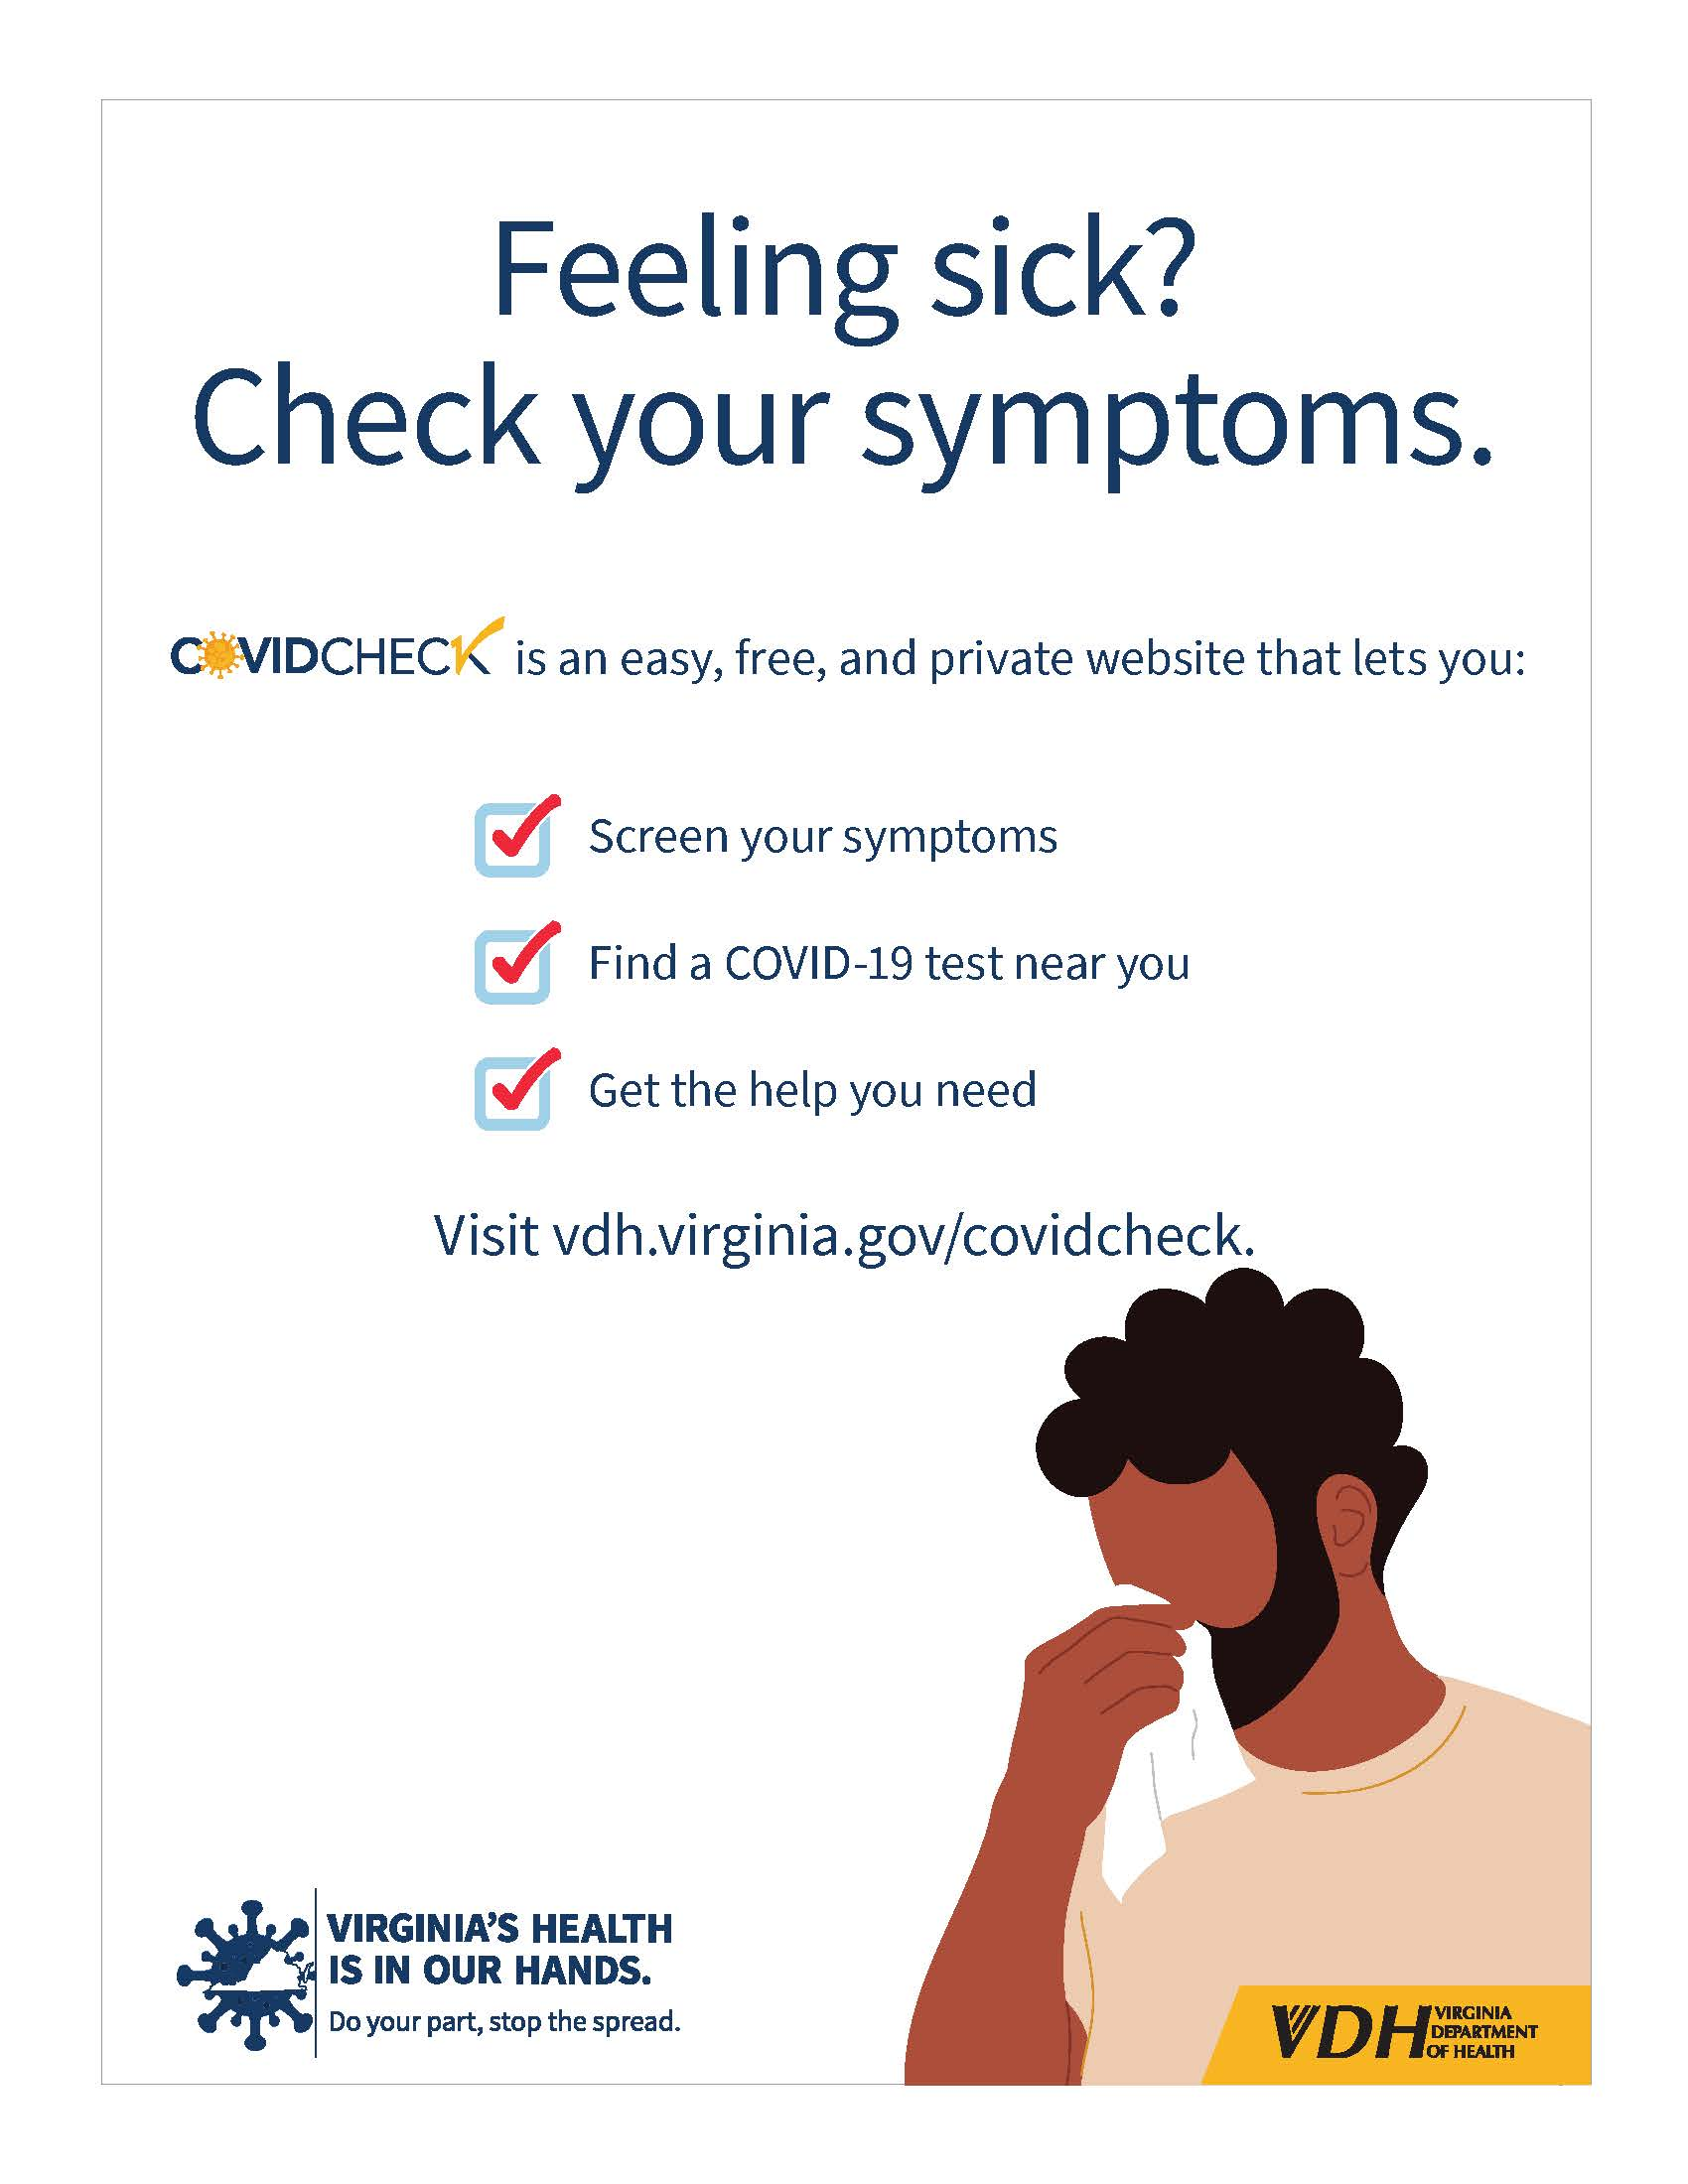 Check your symptoms white background